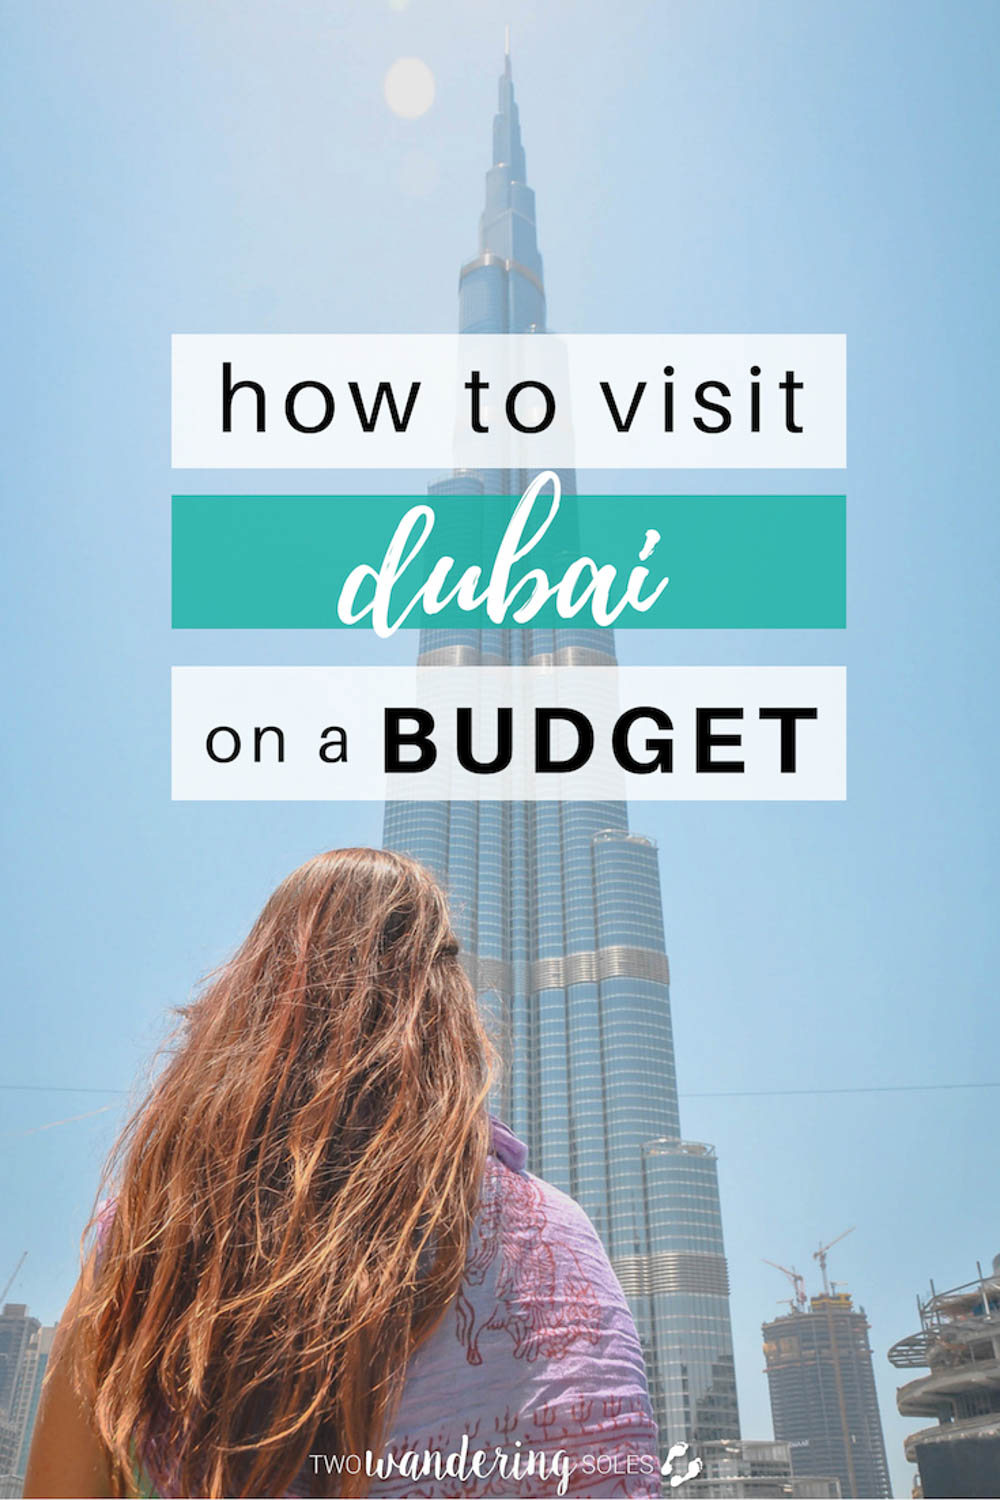 How To Visit Dubai on a Budget